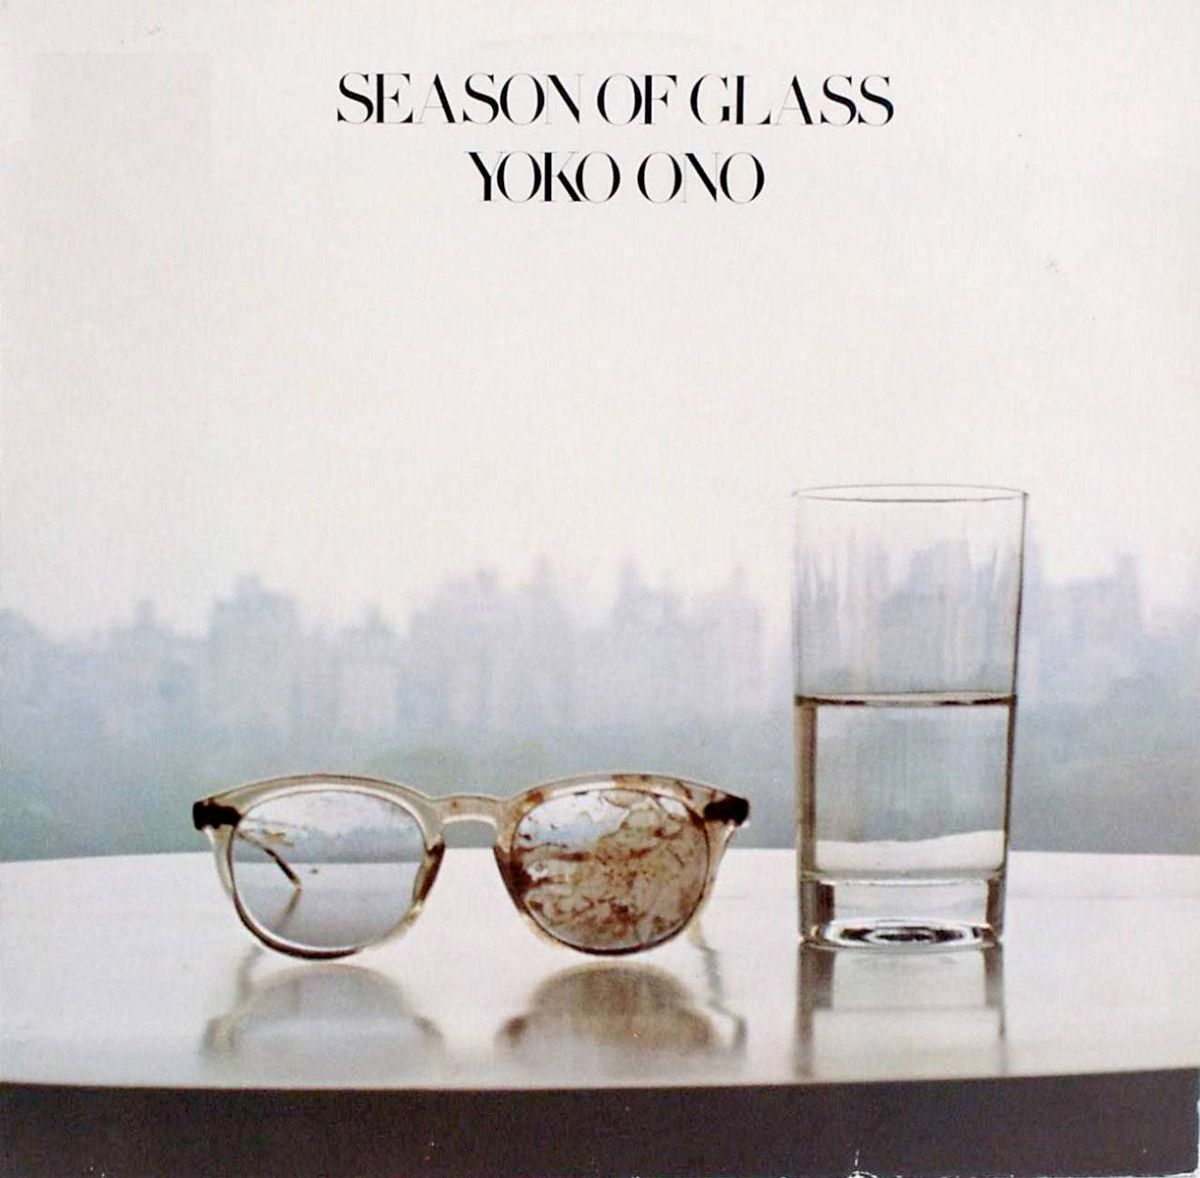 TIL Yoko Ono Used John Lennons Blood Stained Glasses From The Day He Was Shot As A Prop For Her Album Art